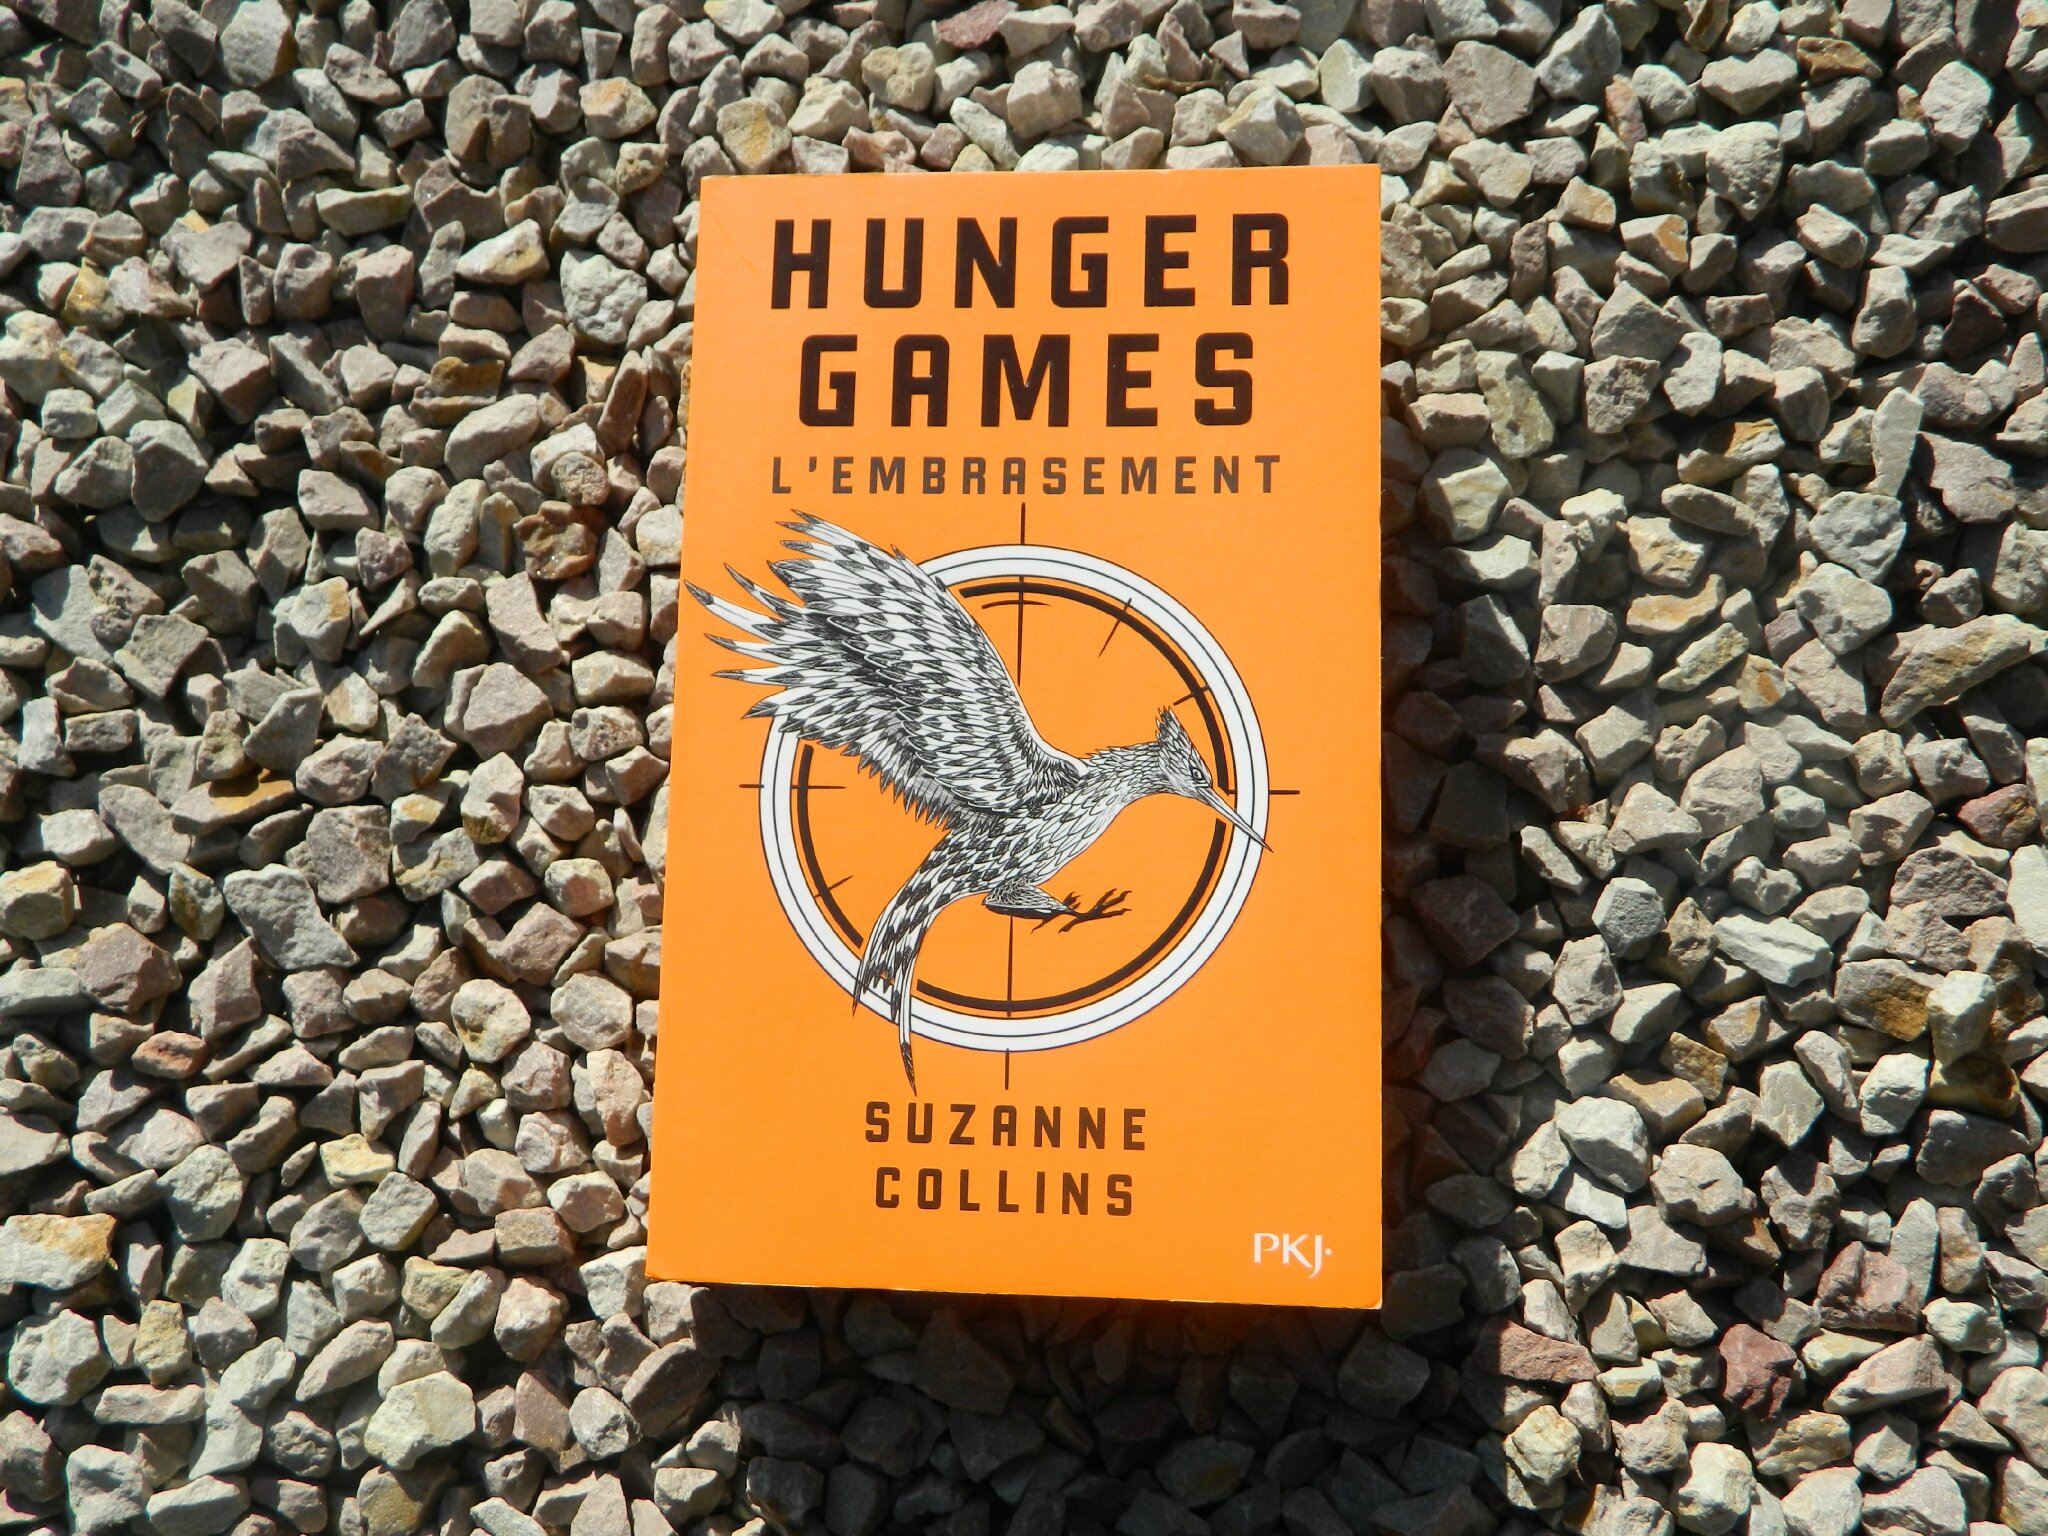 Hunger Games L'embrasement-Suzanne Collins